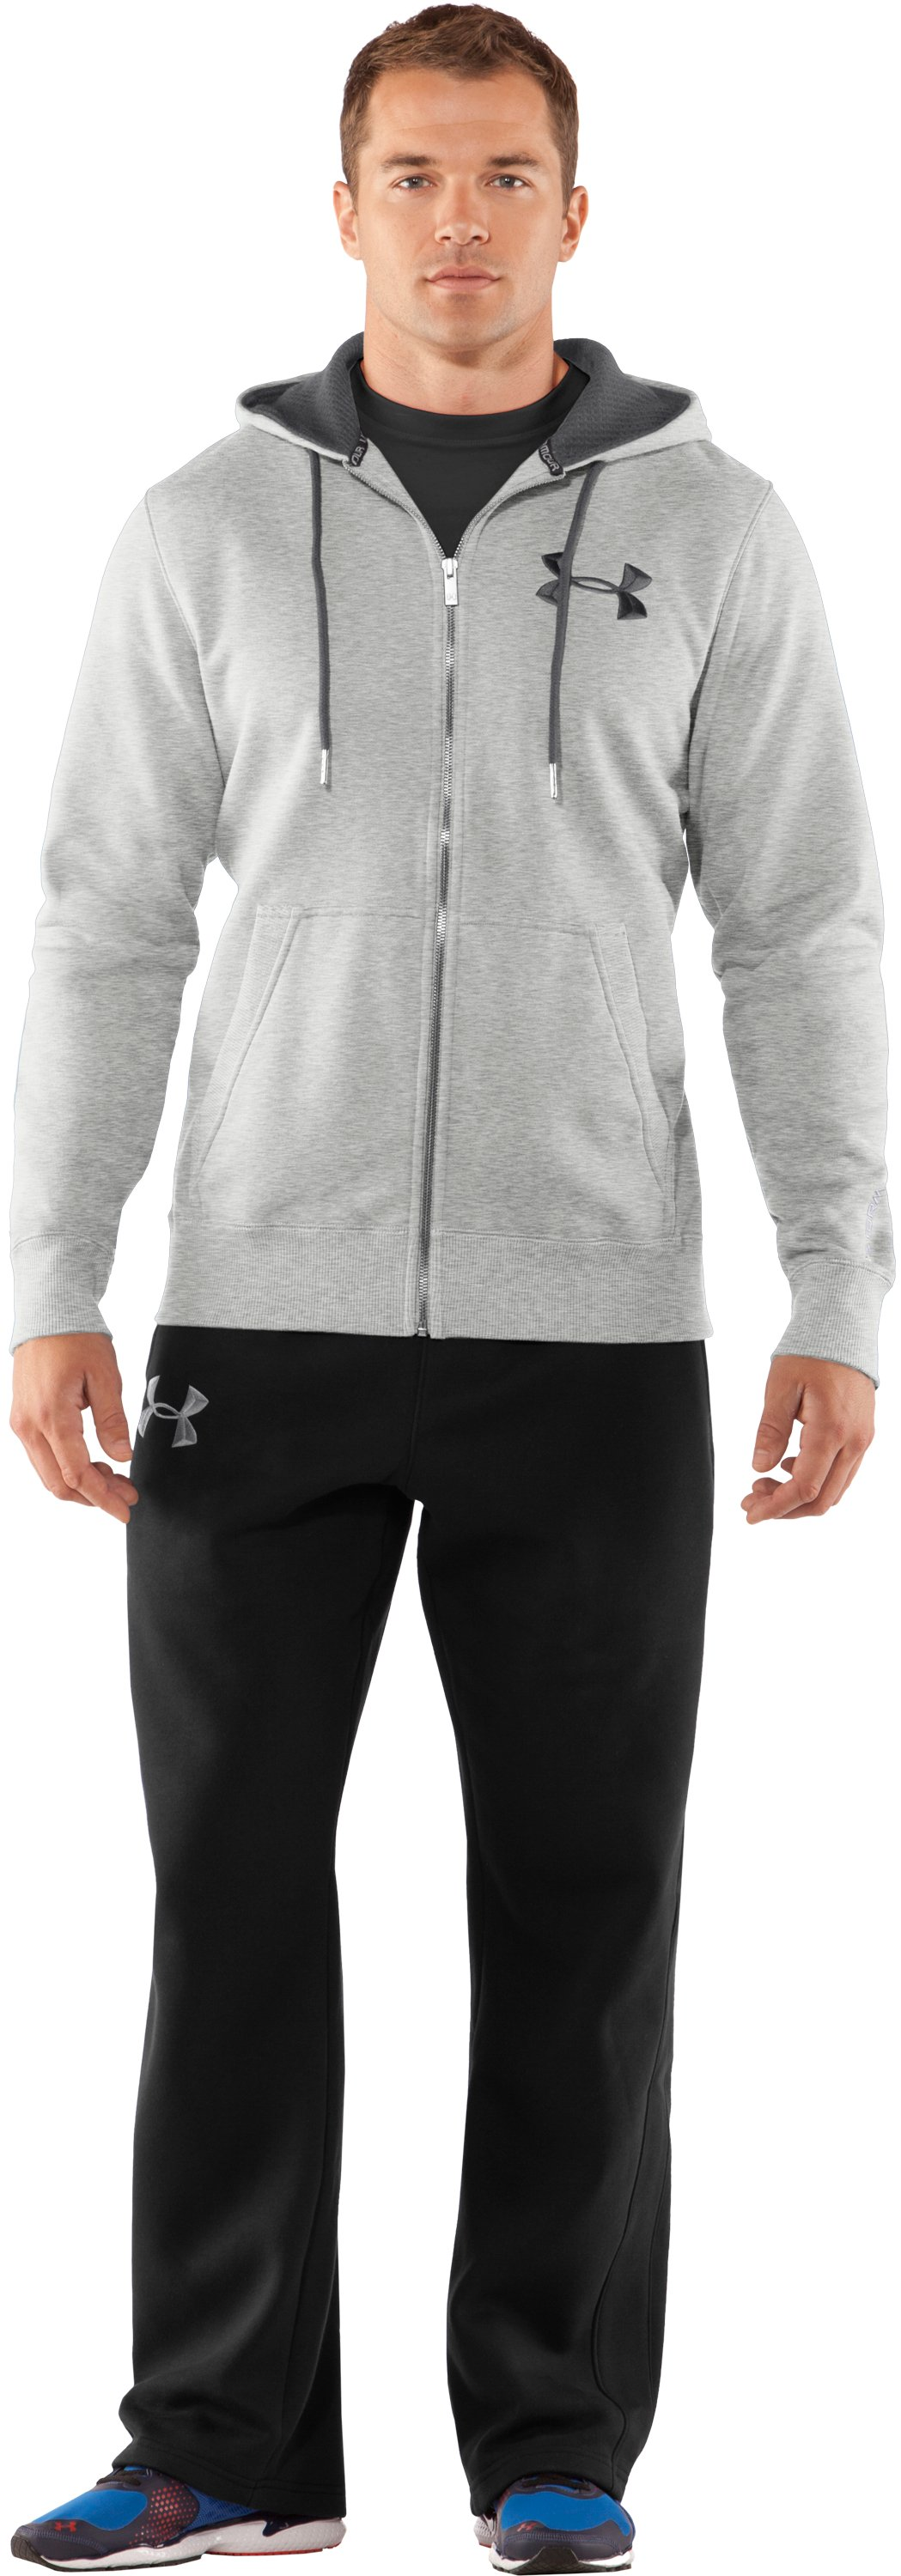 Men's Charged Cotton® Storm Full Zip Hoodie, Silver Heather, Front